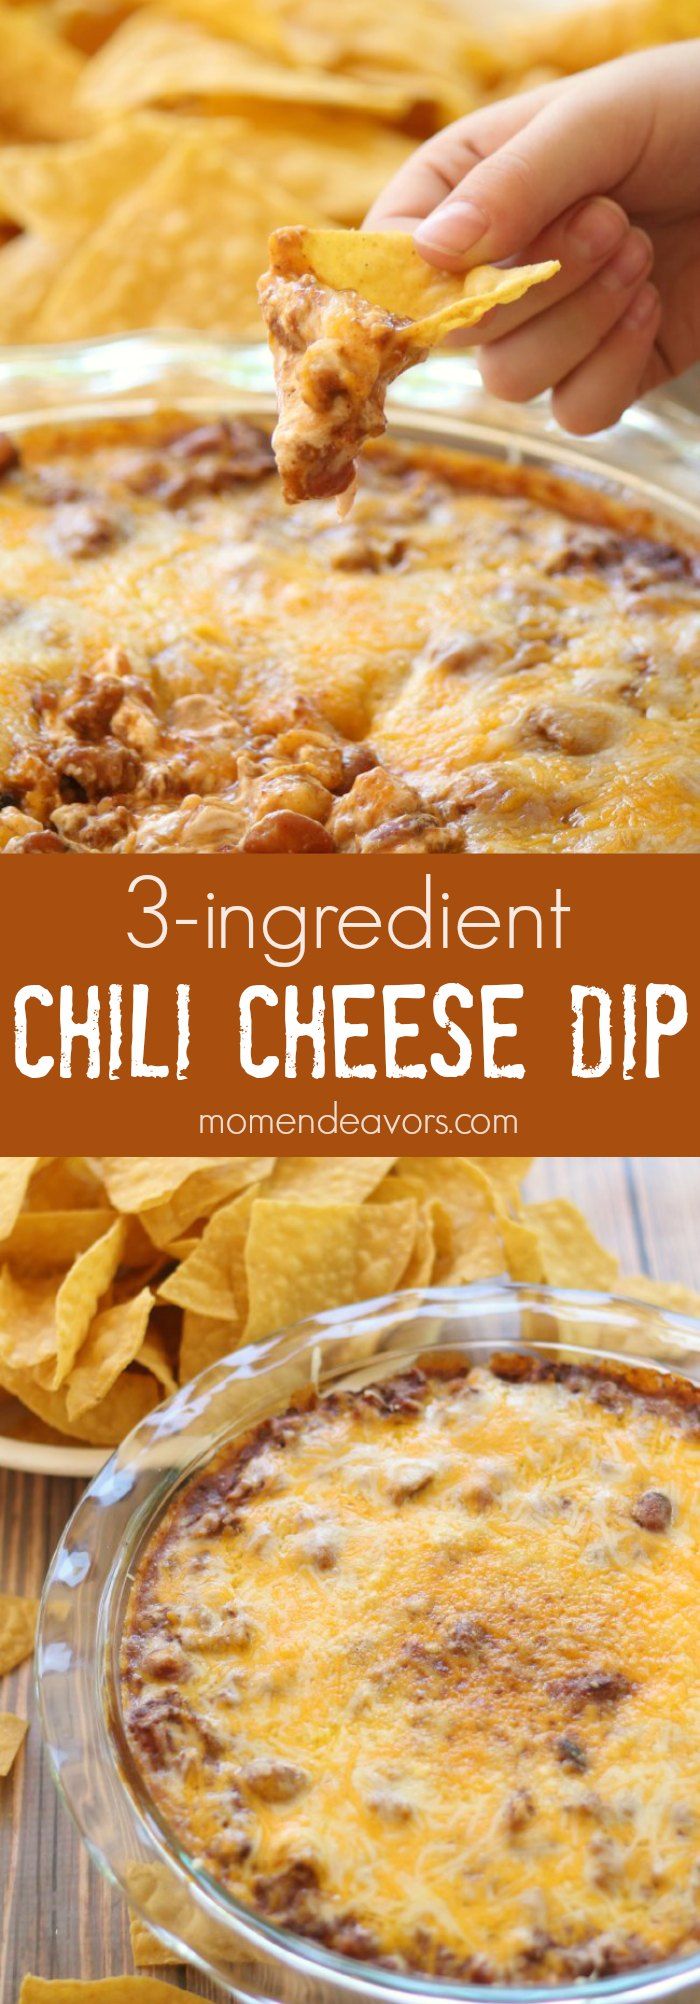 Chili Cheese Dip Recipes